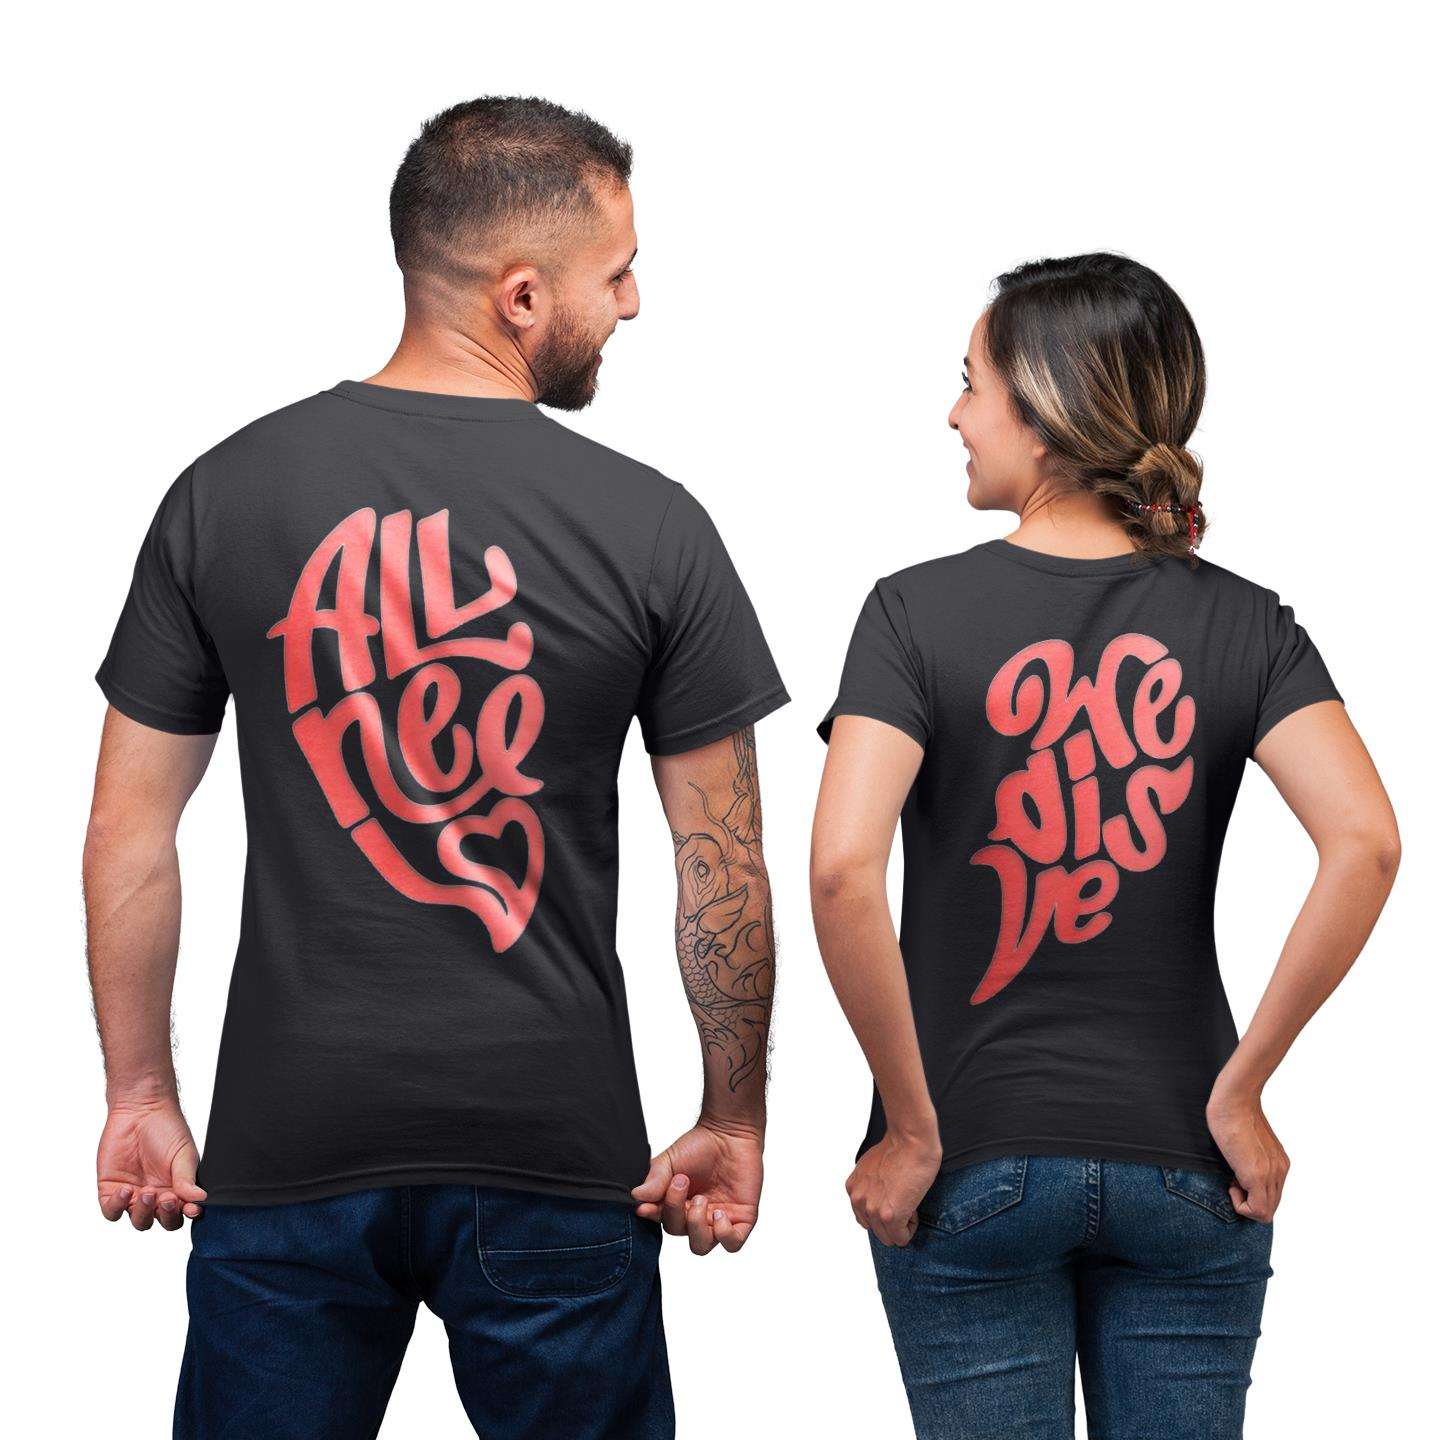 AlI We Need Is Love Heart Matching Shirt For Lover Couple His Her T-shirt